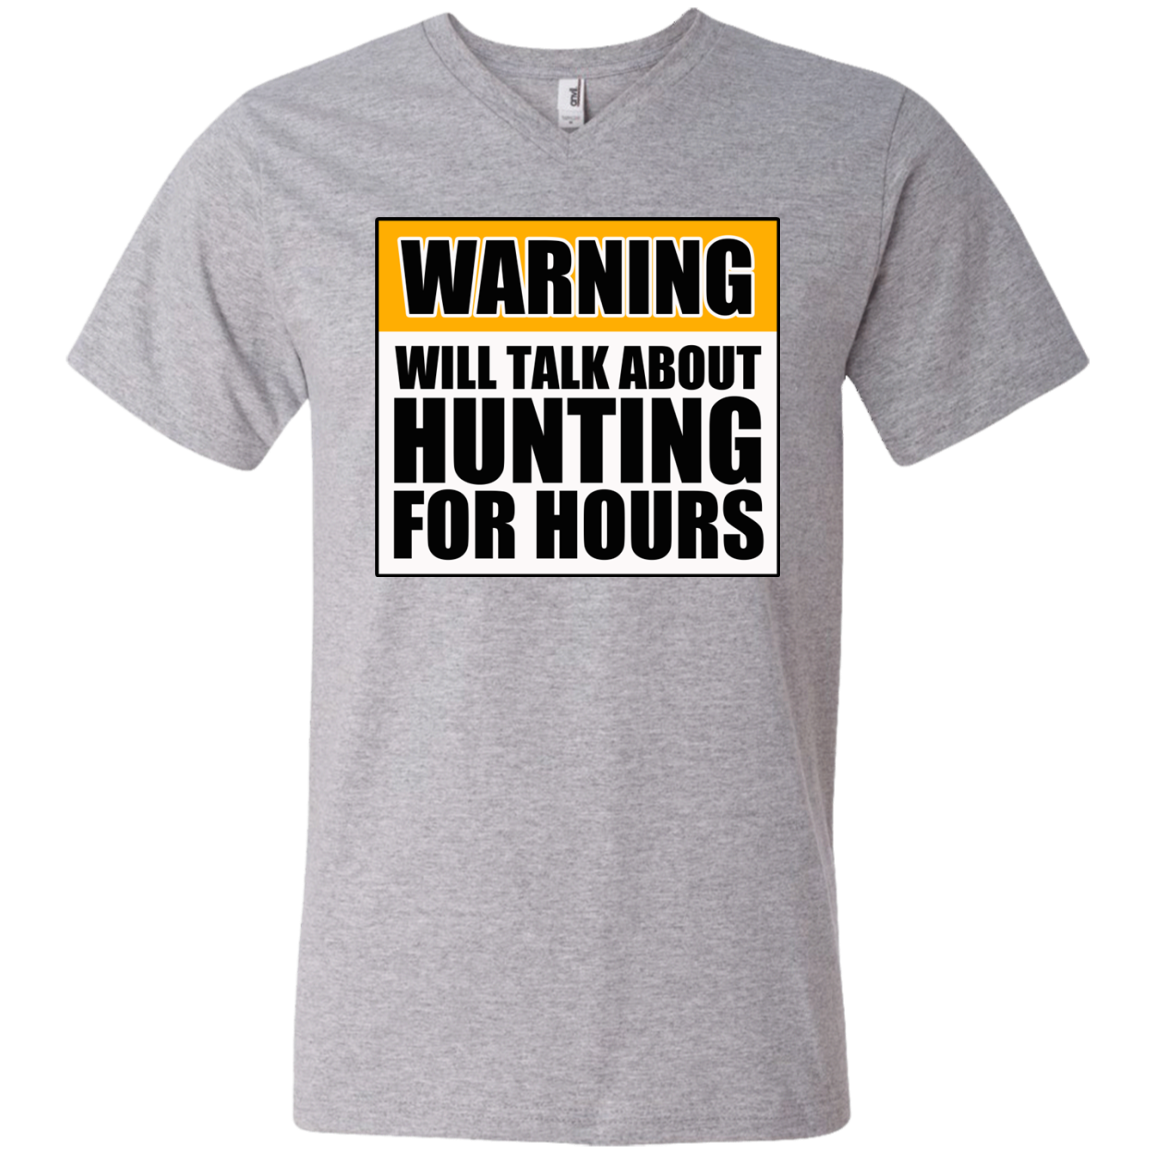 Warning Will Talk About Hunting For Hours Men's Printed V-Neck T